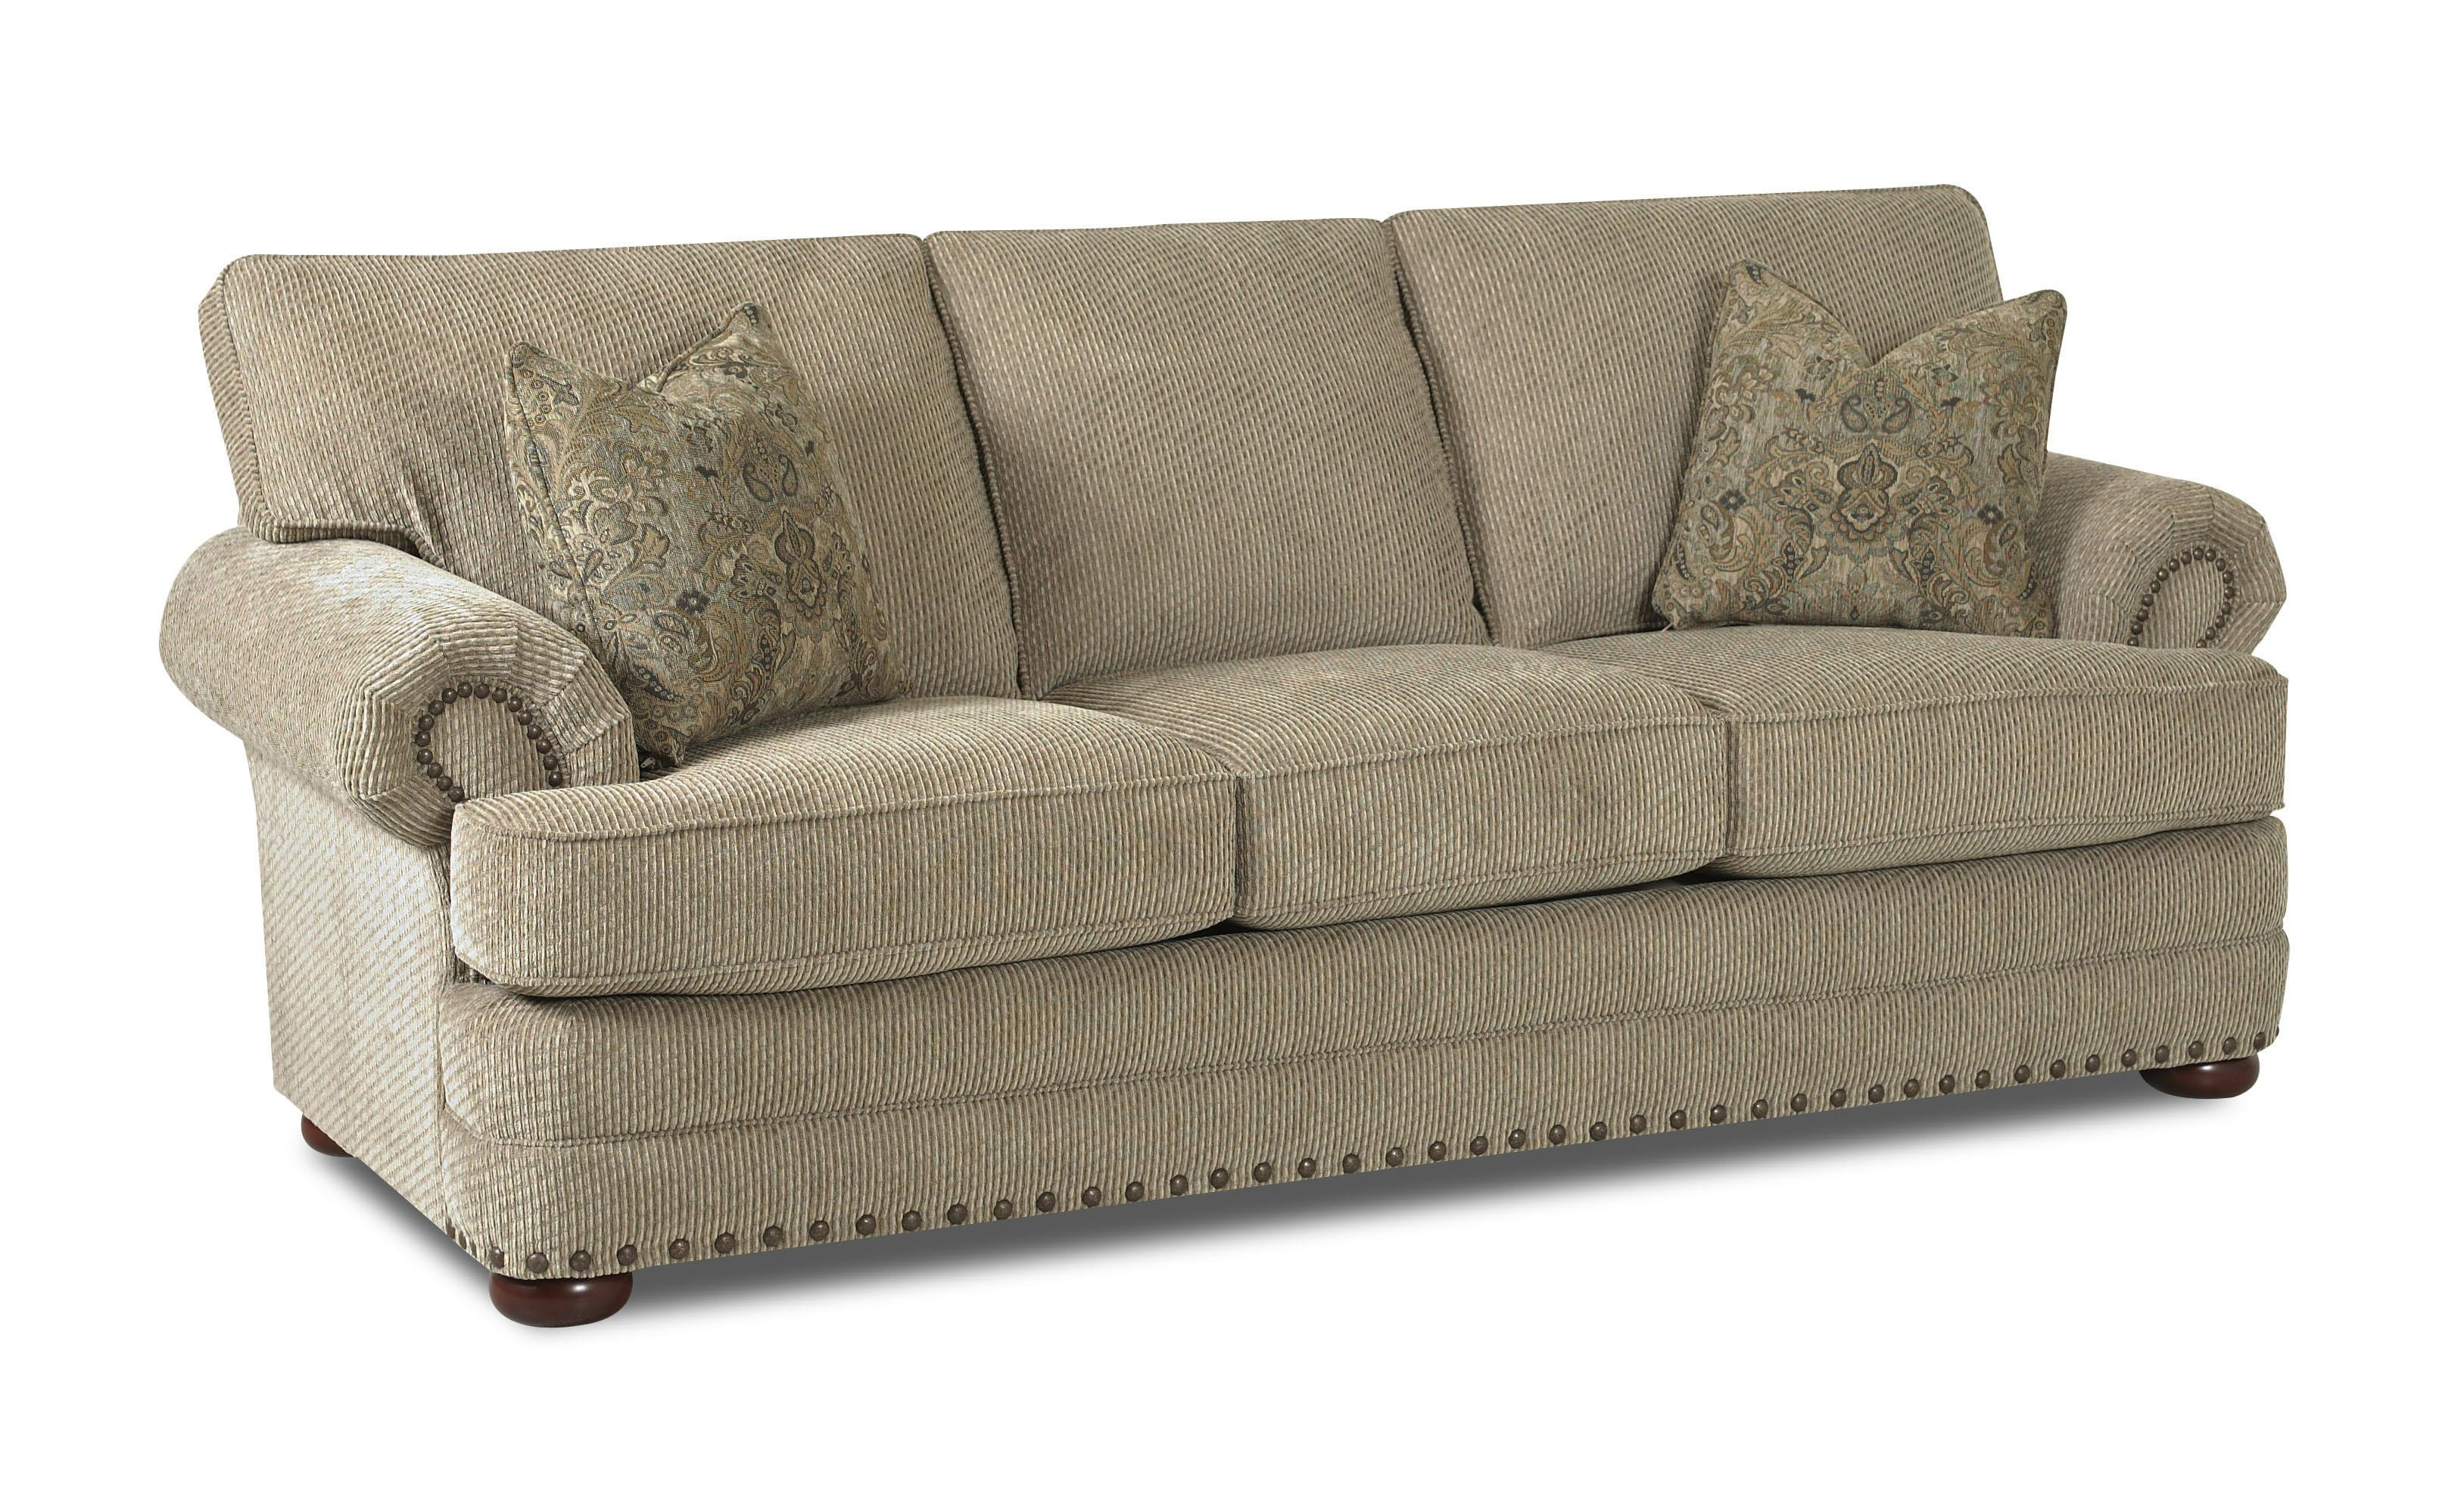 sofa accessories names 3 seater fabric klaussner cliffside ok30200 s traditional styled with